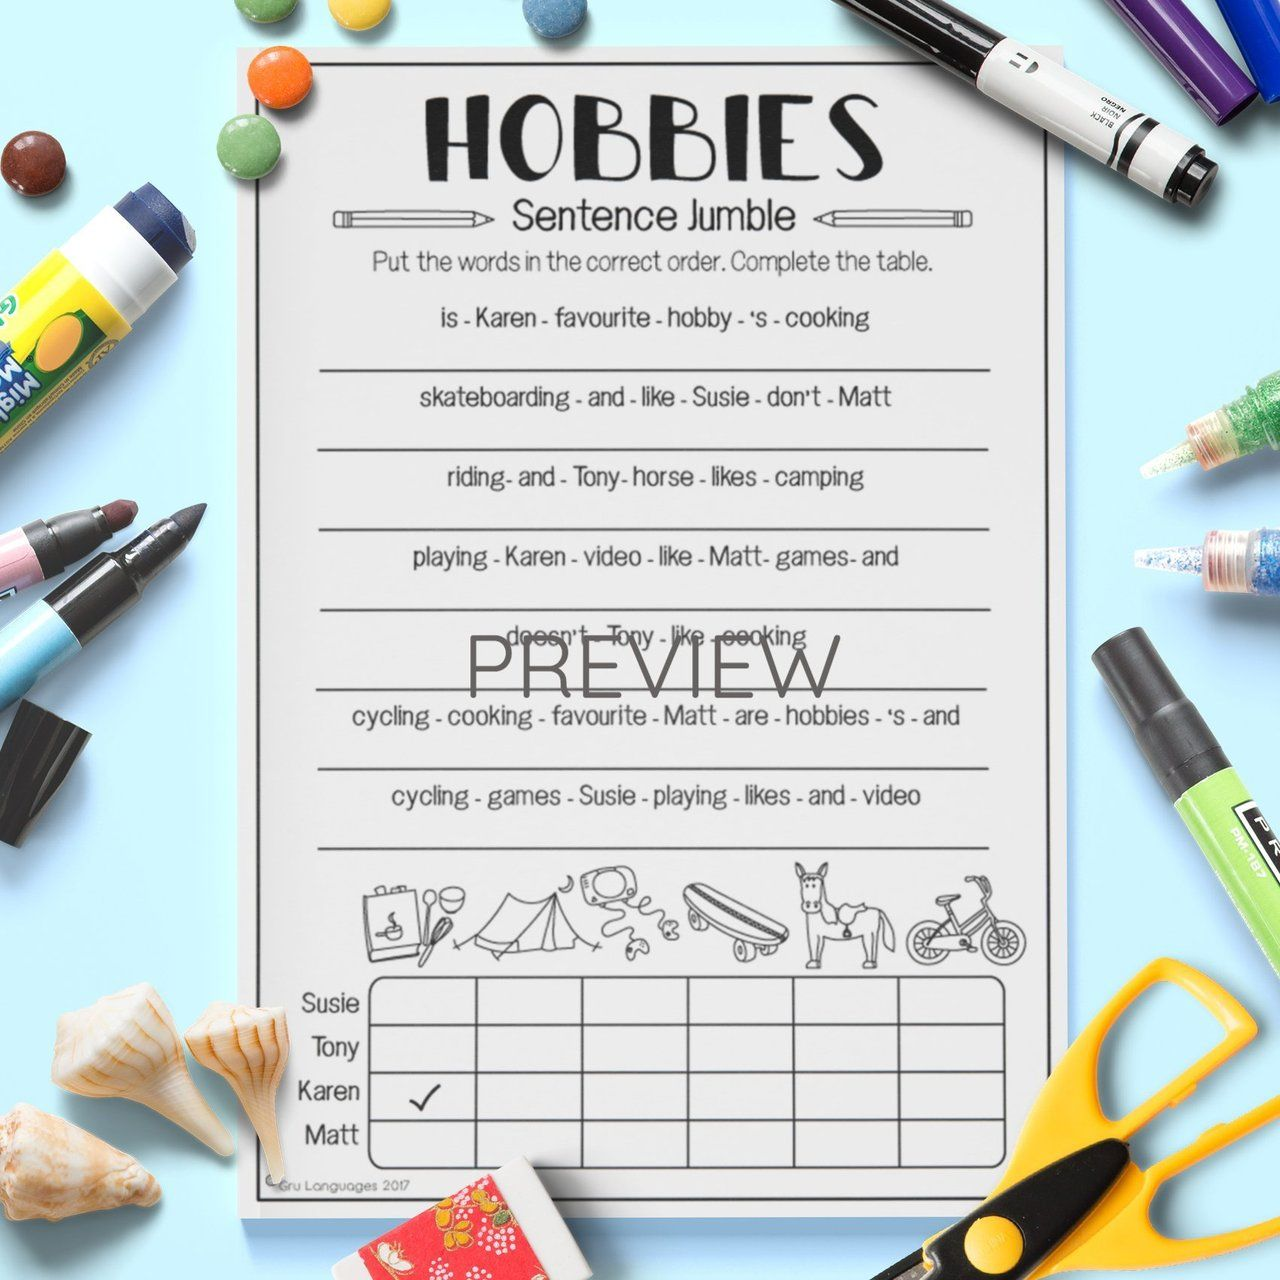 Hobbies Sentence Jumble